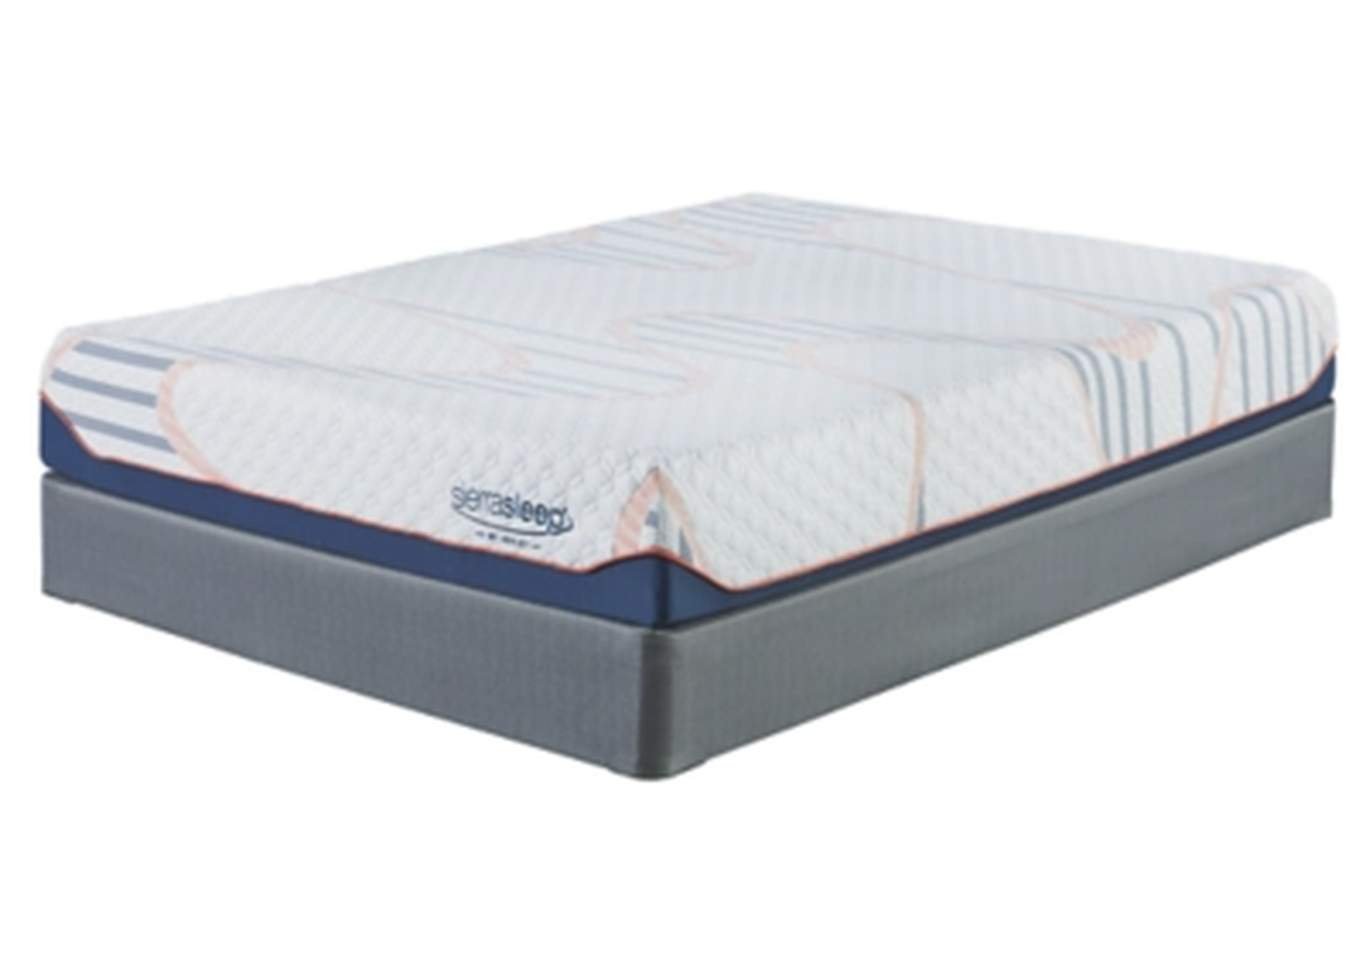 10 Inch MyGel White King Mattress w/Foundation,Sierra Sleep by Ashley